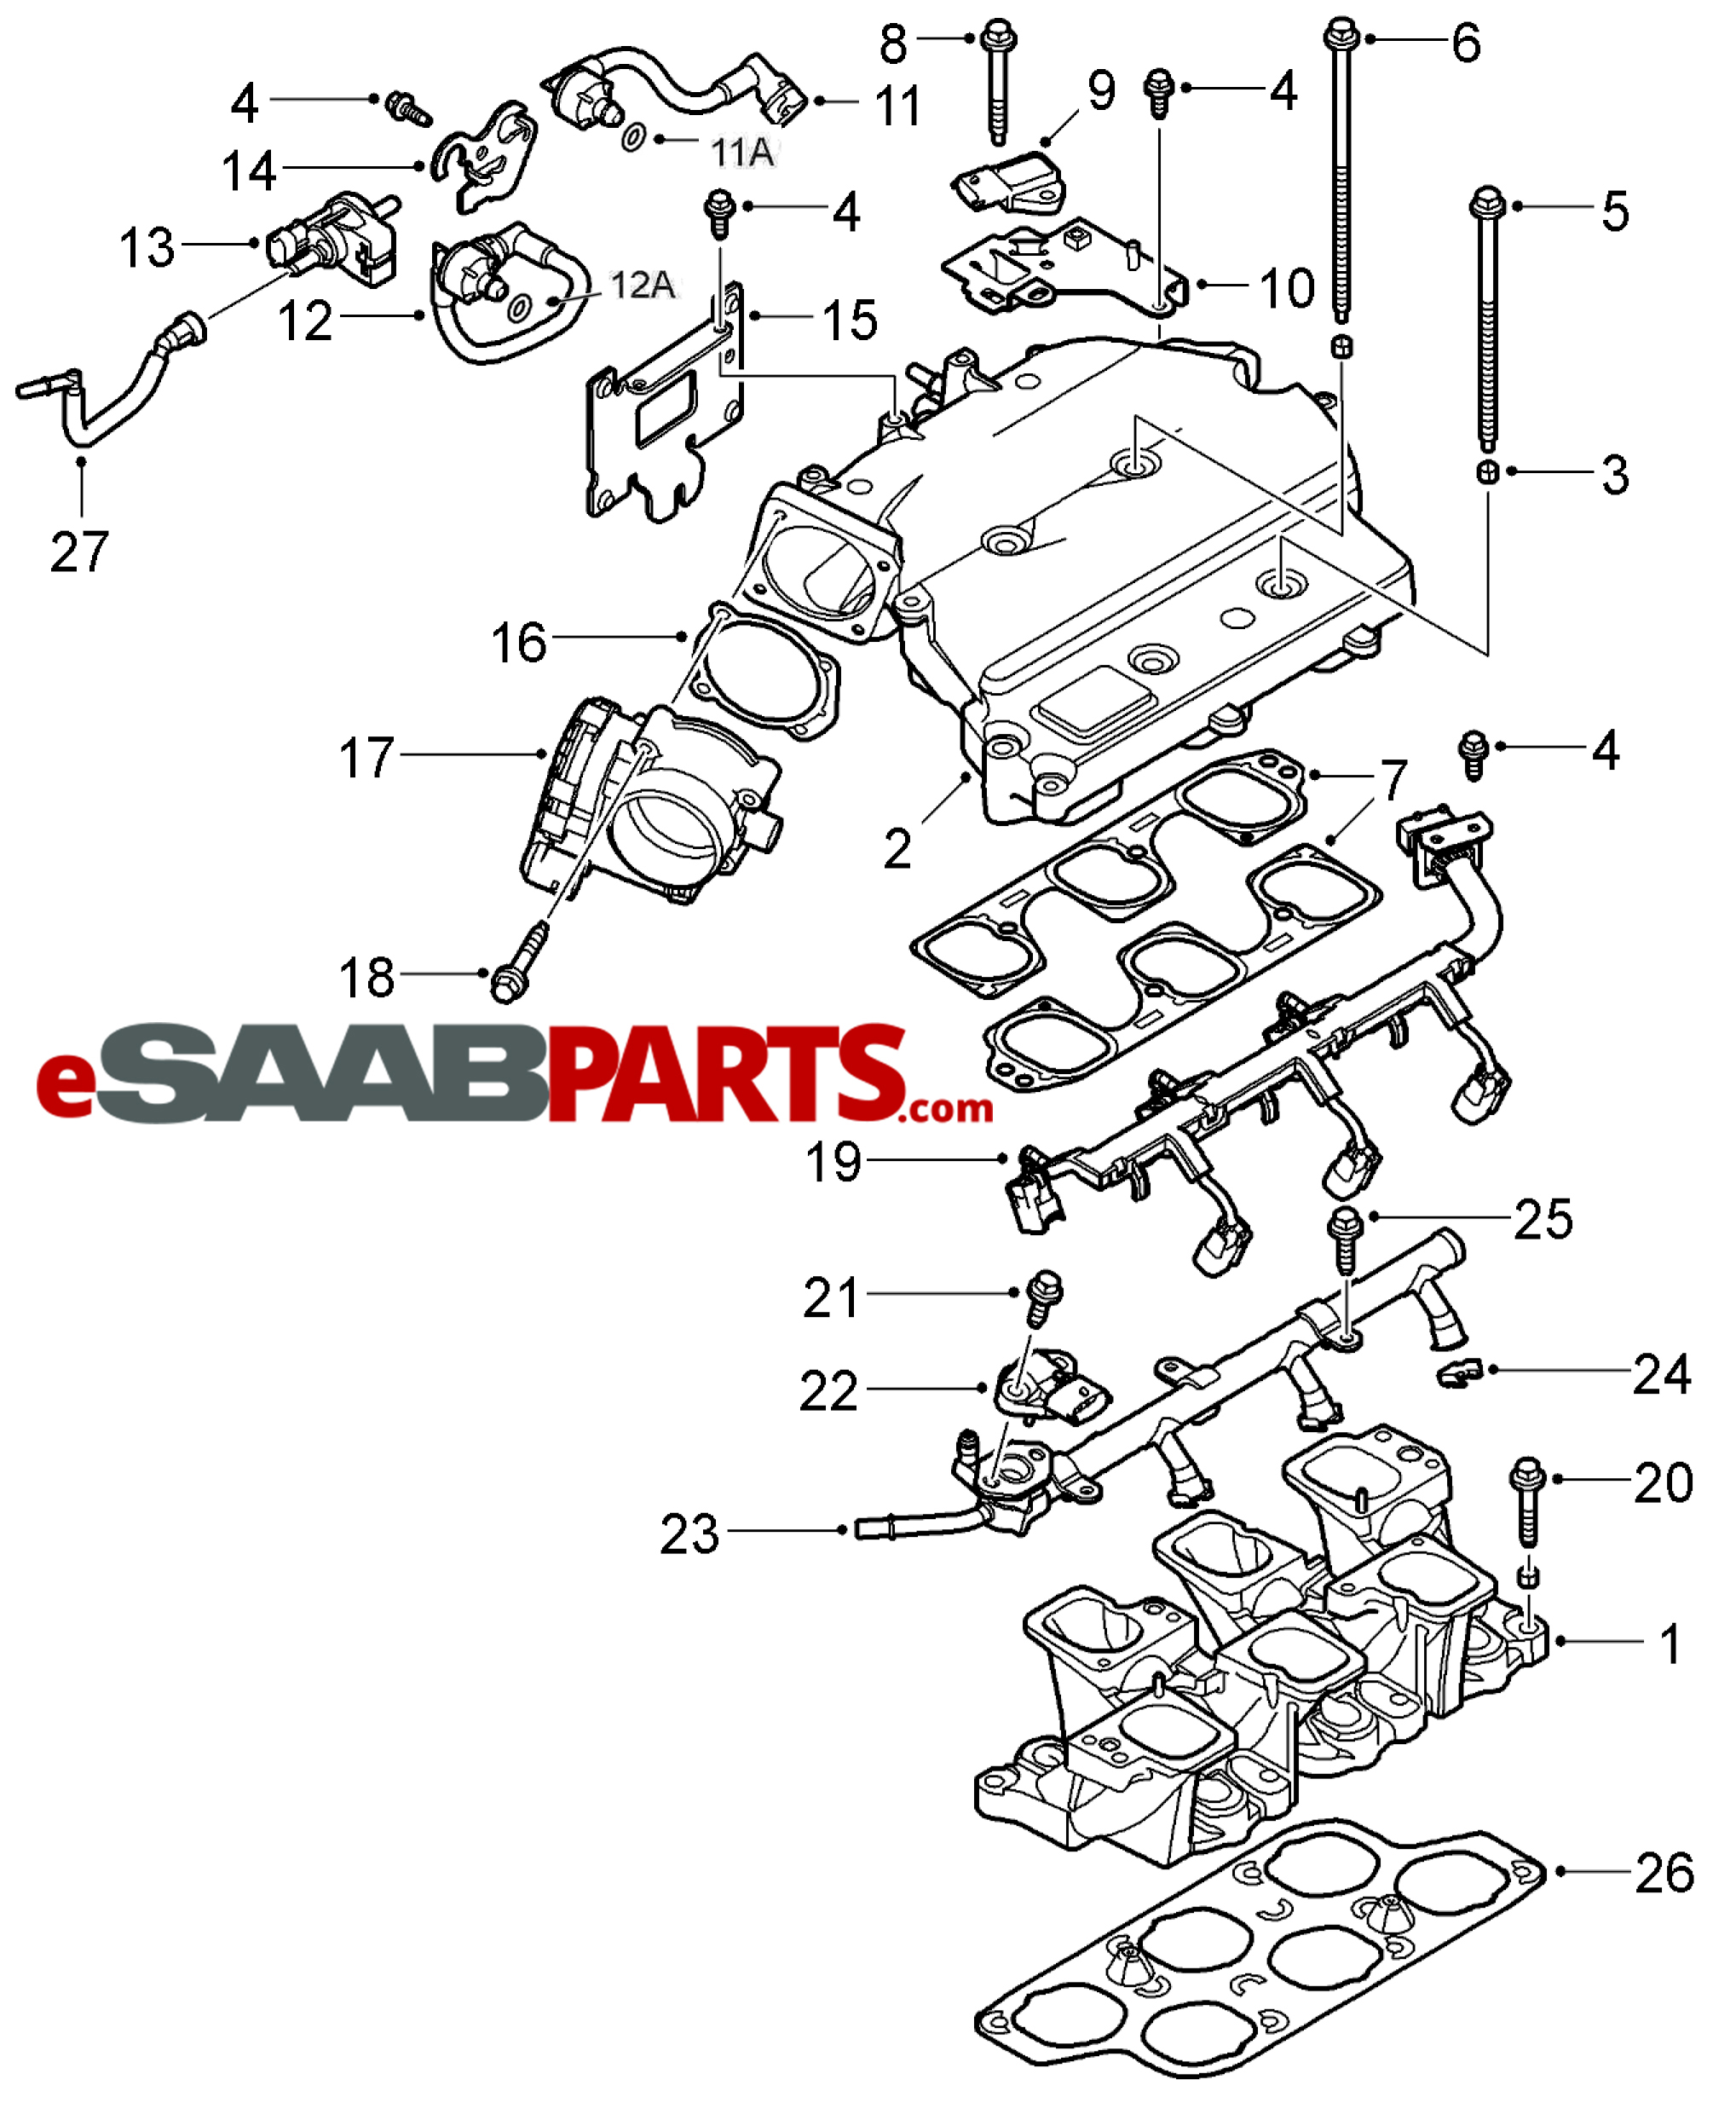 home · v6 intake diagram · esaabparts com saab 9 3 (9440) \u003e engine  parts \u003e intake manifold